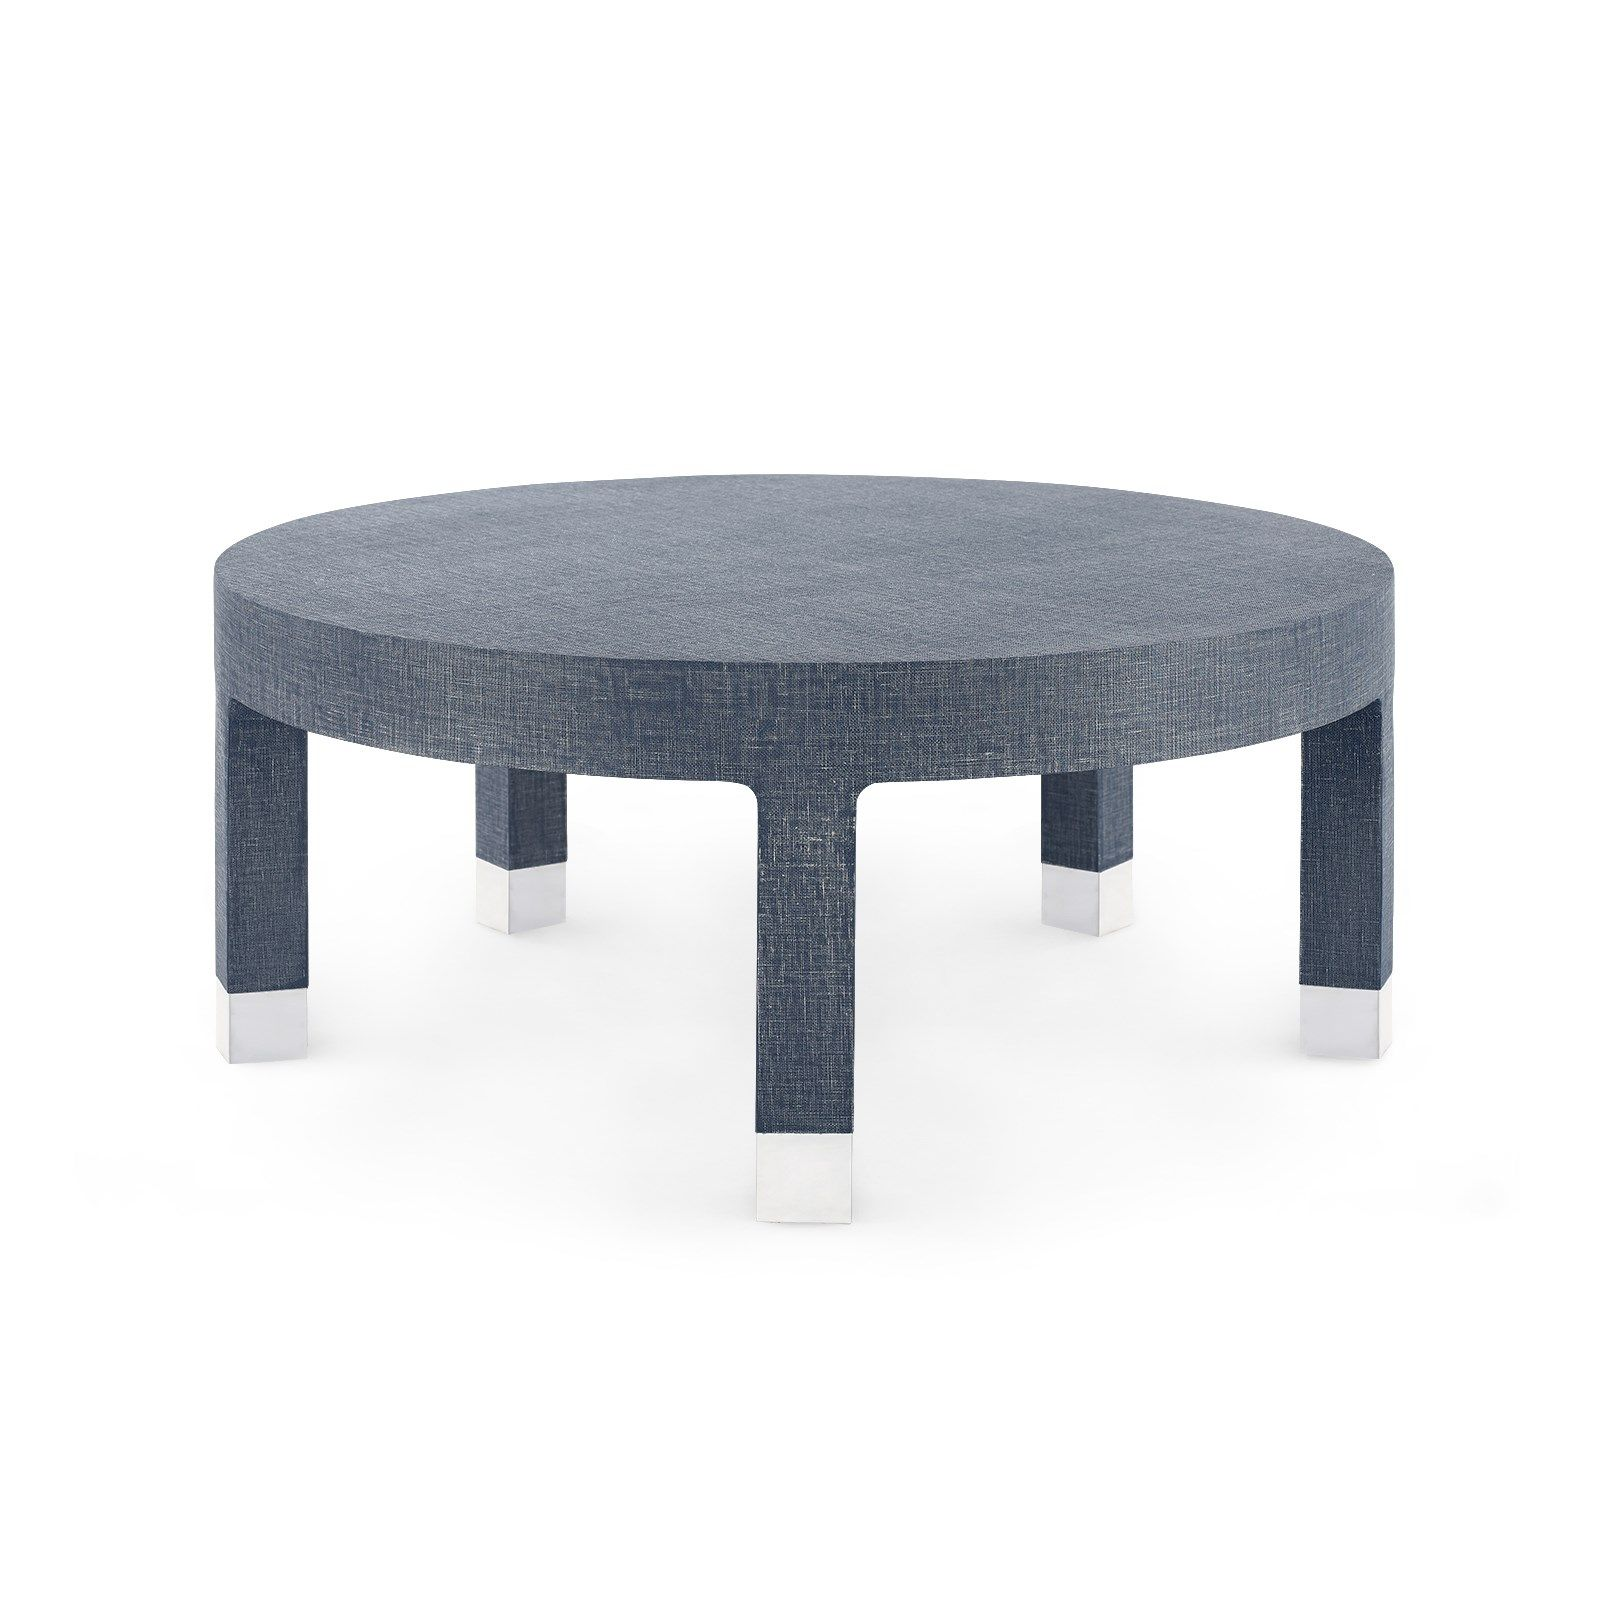 Bungalow 5 - DAKOTA LARGE ROUND COFFEE TABLE, NAVY BLUE